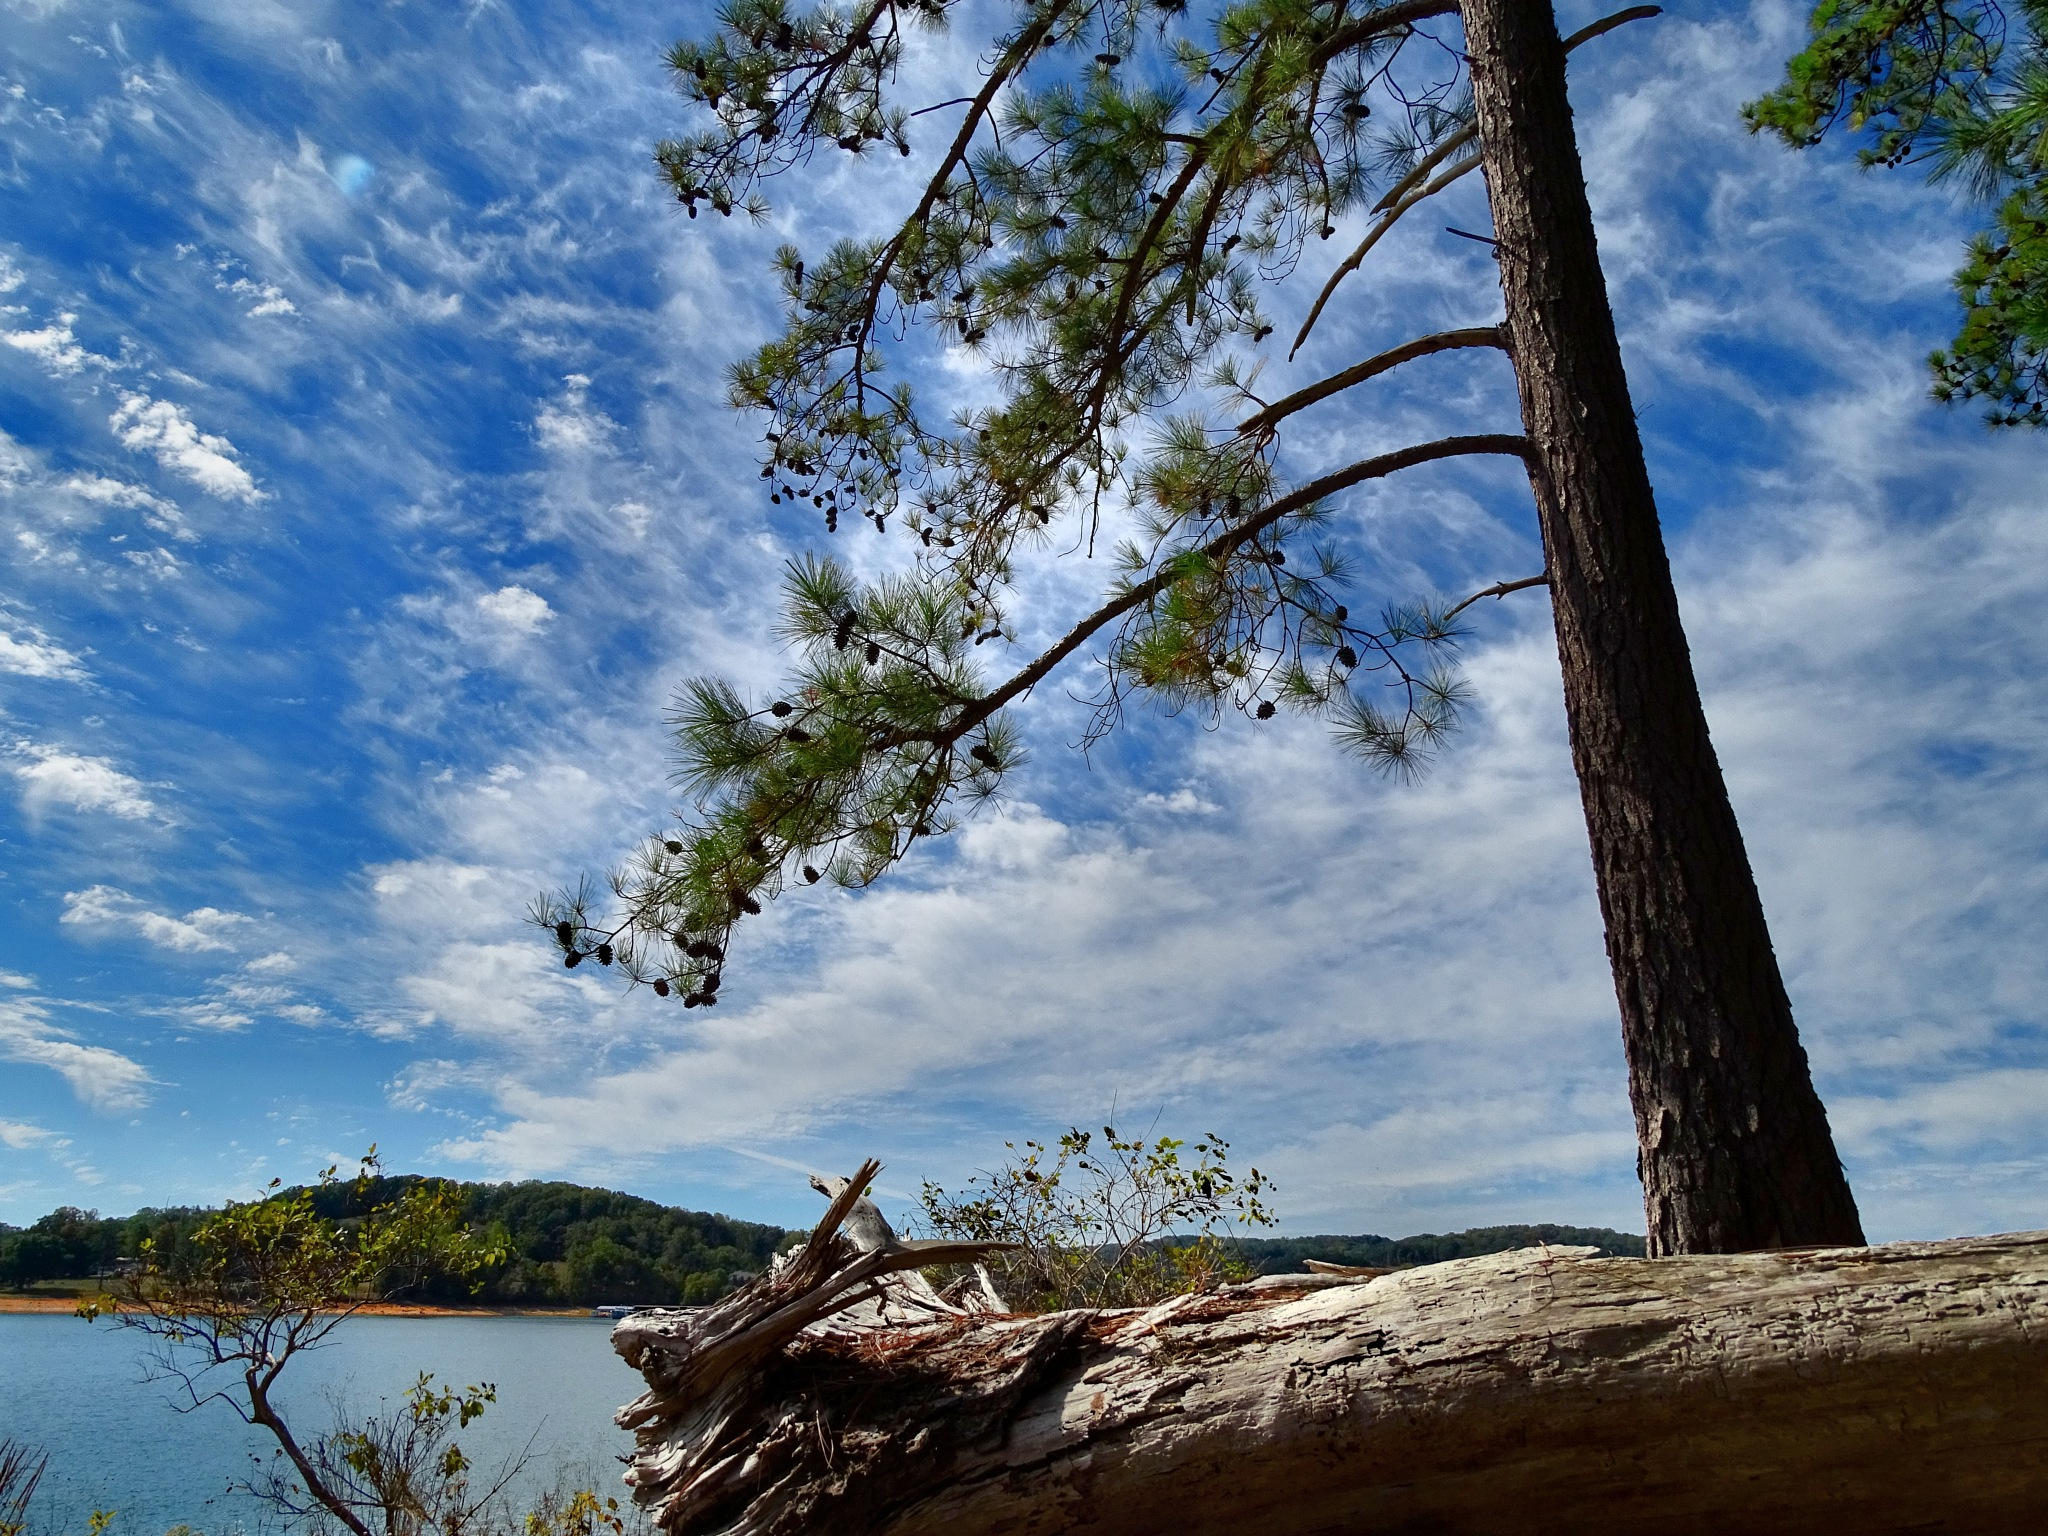 Cherokee Lake Bean Station, Tennessee by Patty Stockton